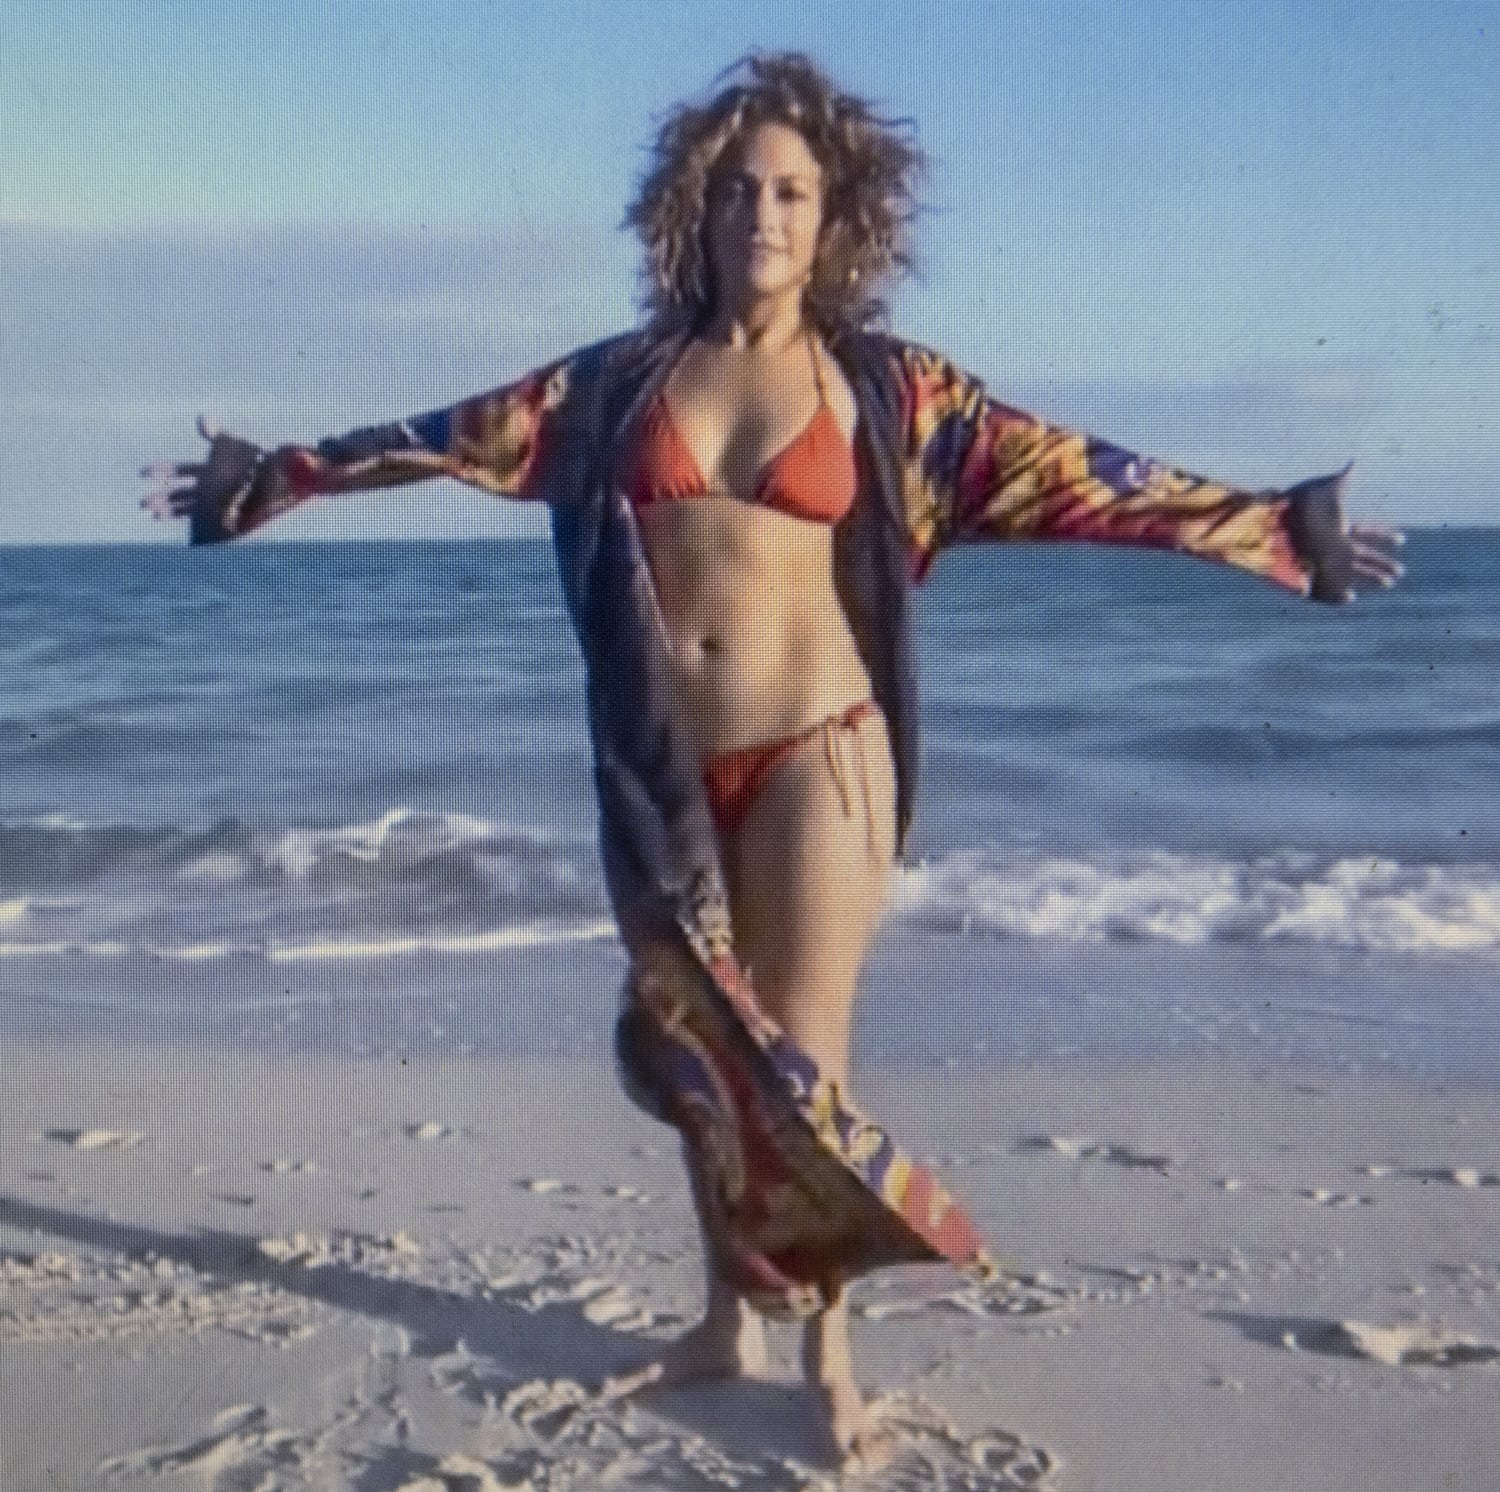 Wearing a red string bikini and a personalized robe in January 2021, Jennifer Lopez says men like her normal height and weight